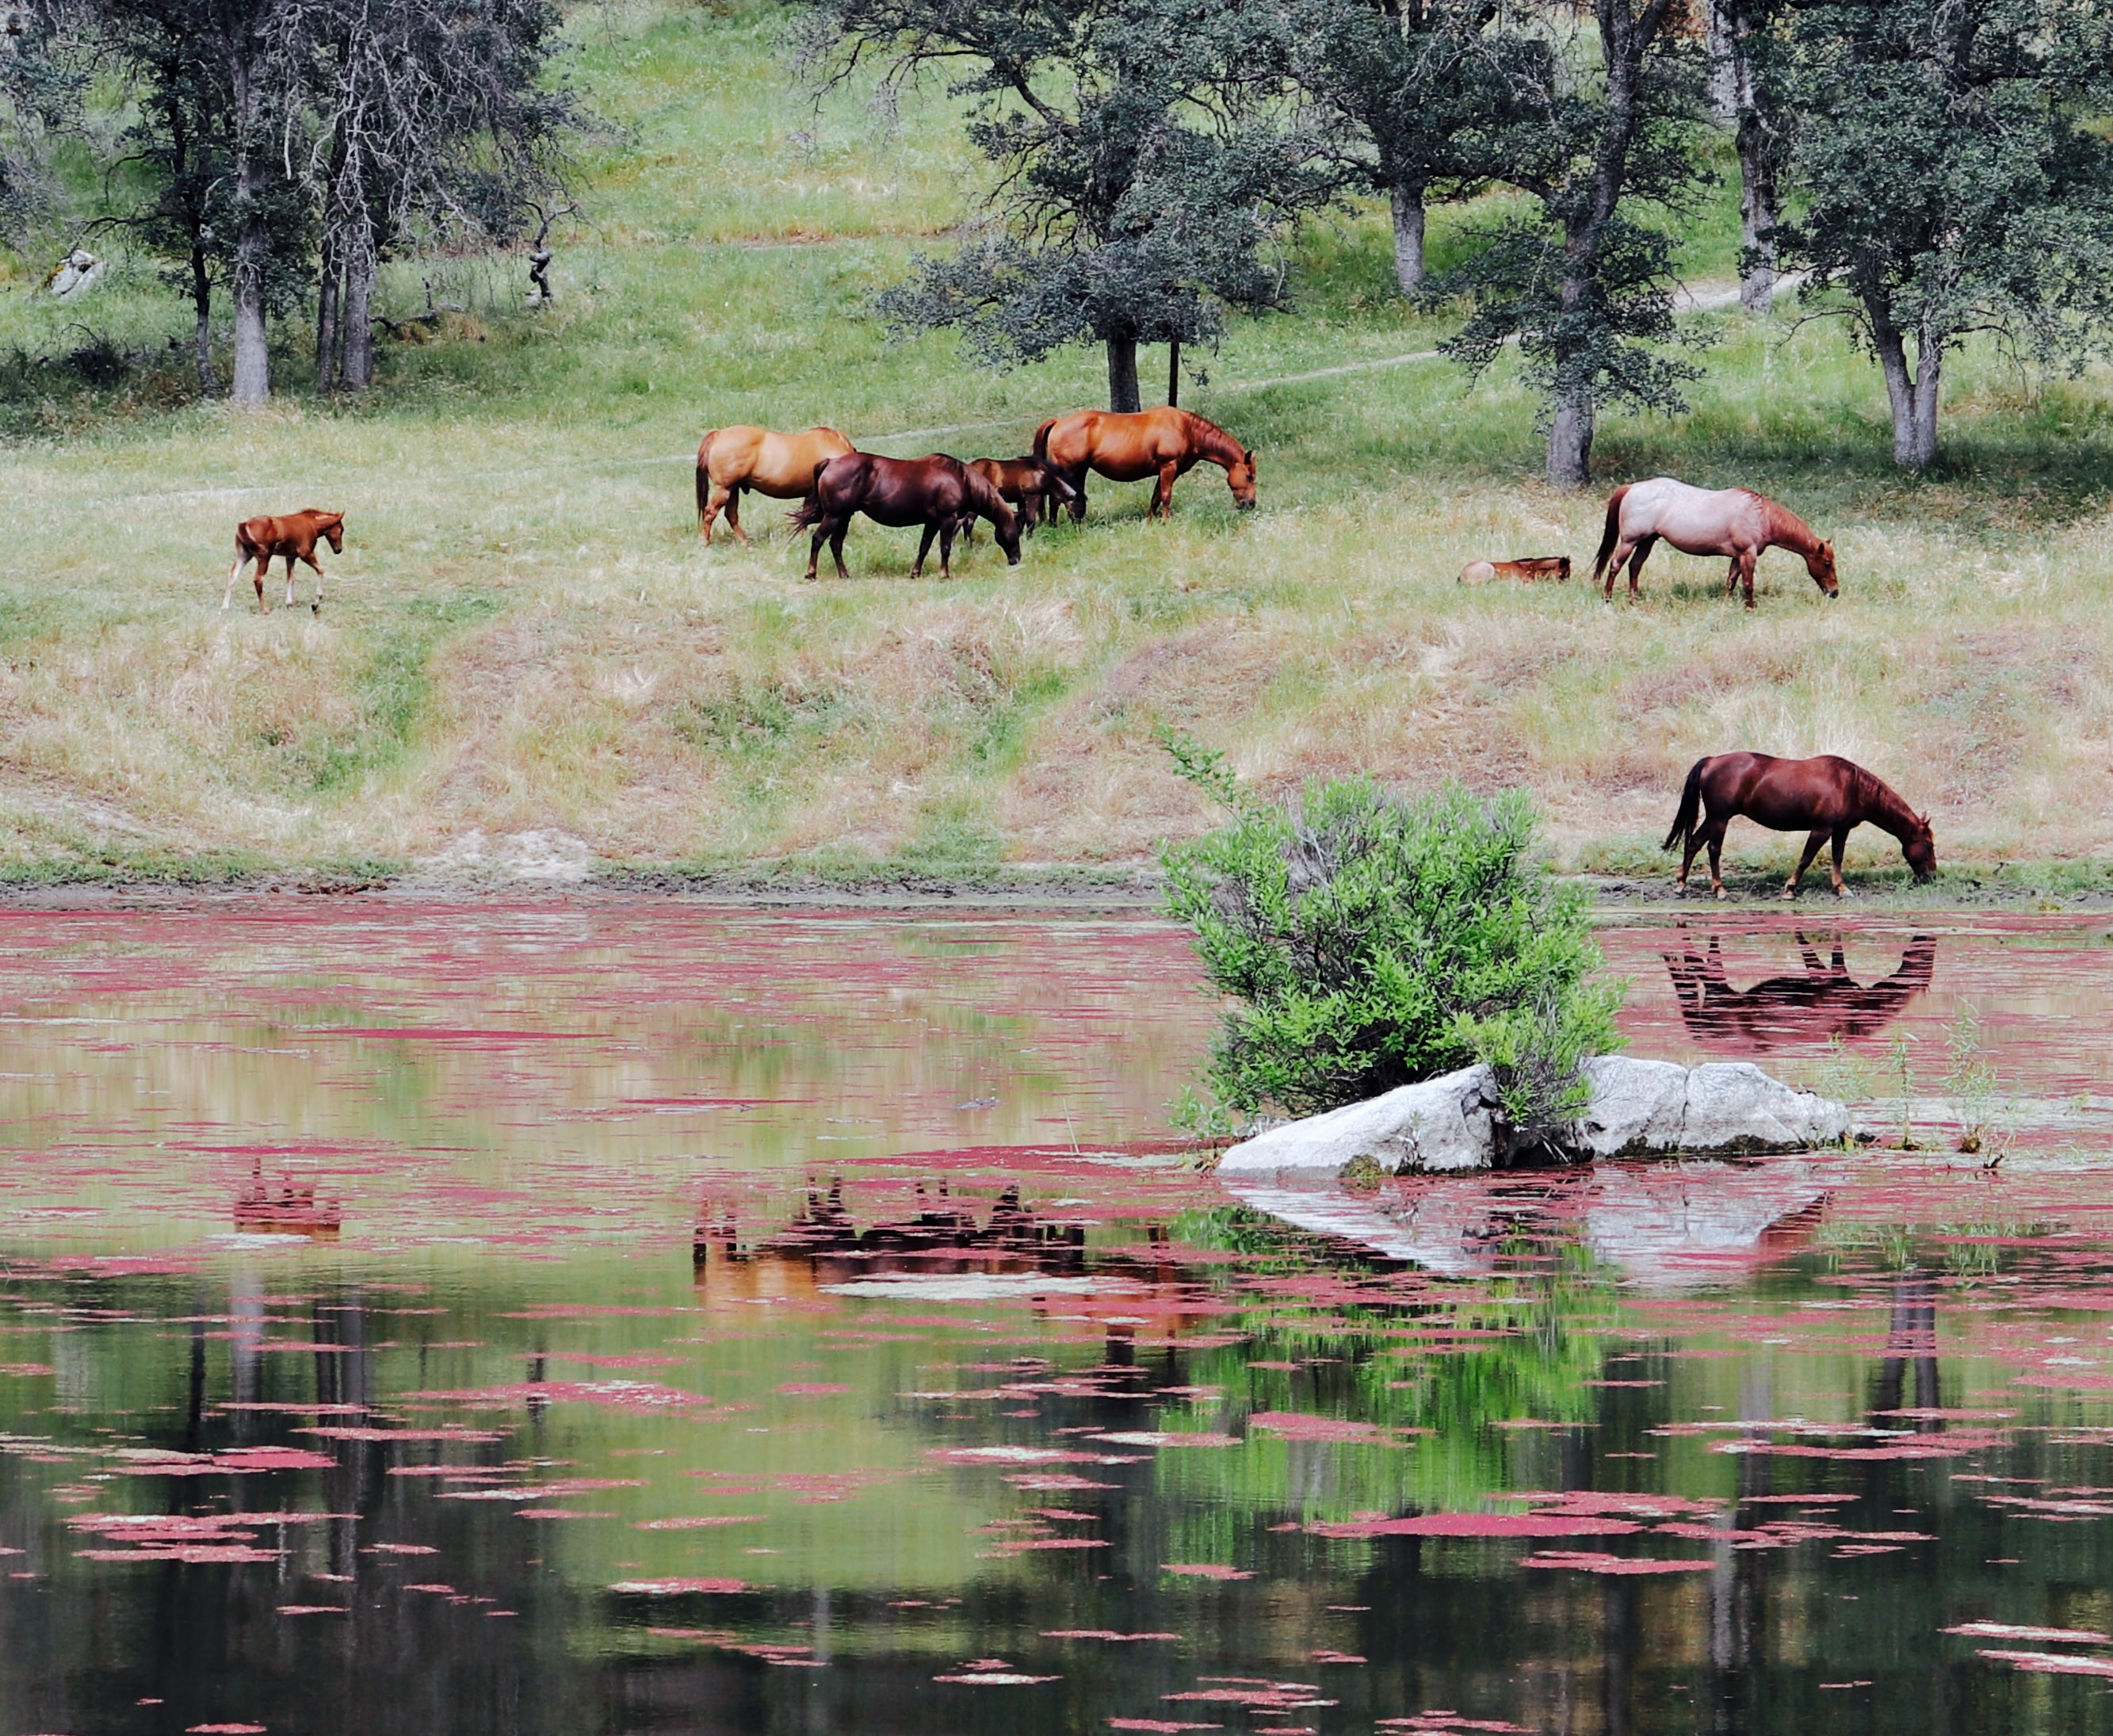 horses near body of water